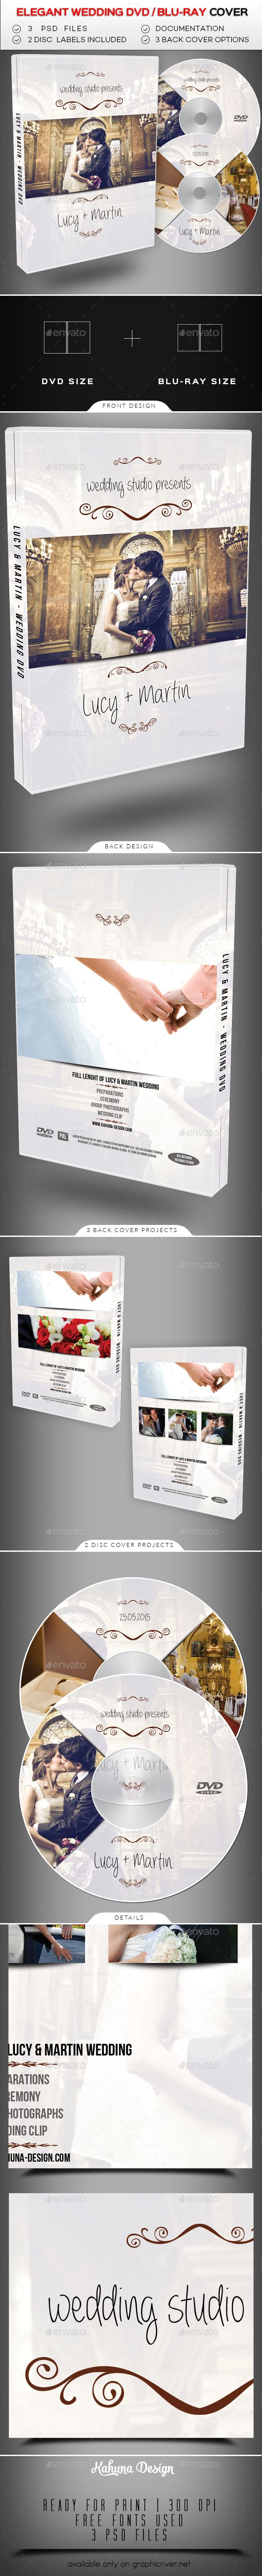 Wedding Dvd Blu Ray Cover 2 Cd Dvd Artwork Print Templates